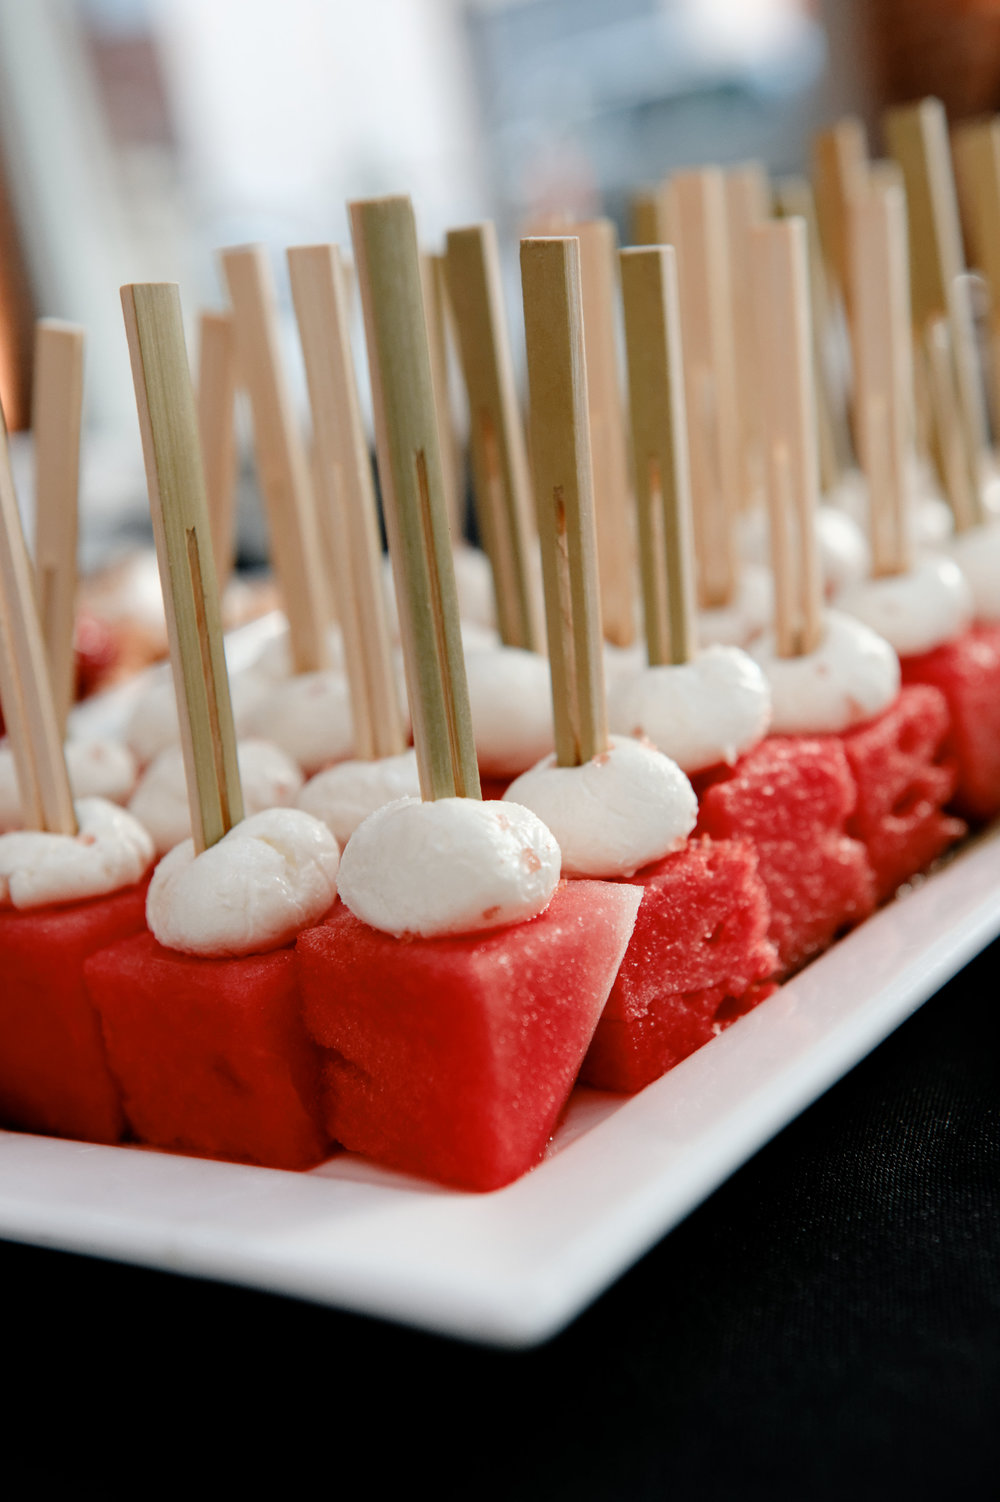 watermelon skewer 2.jpg